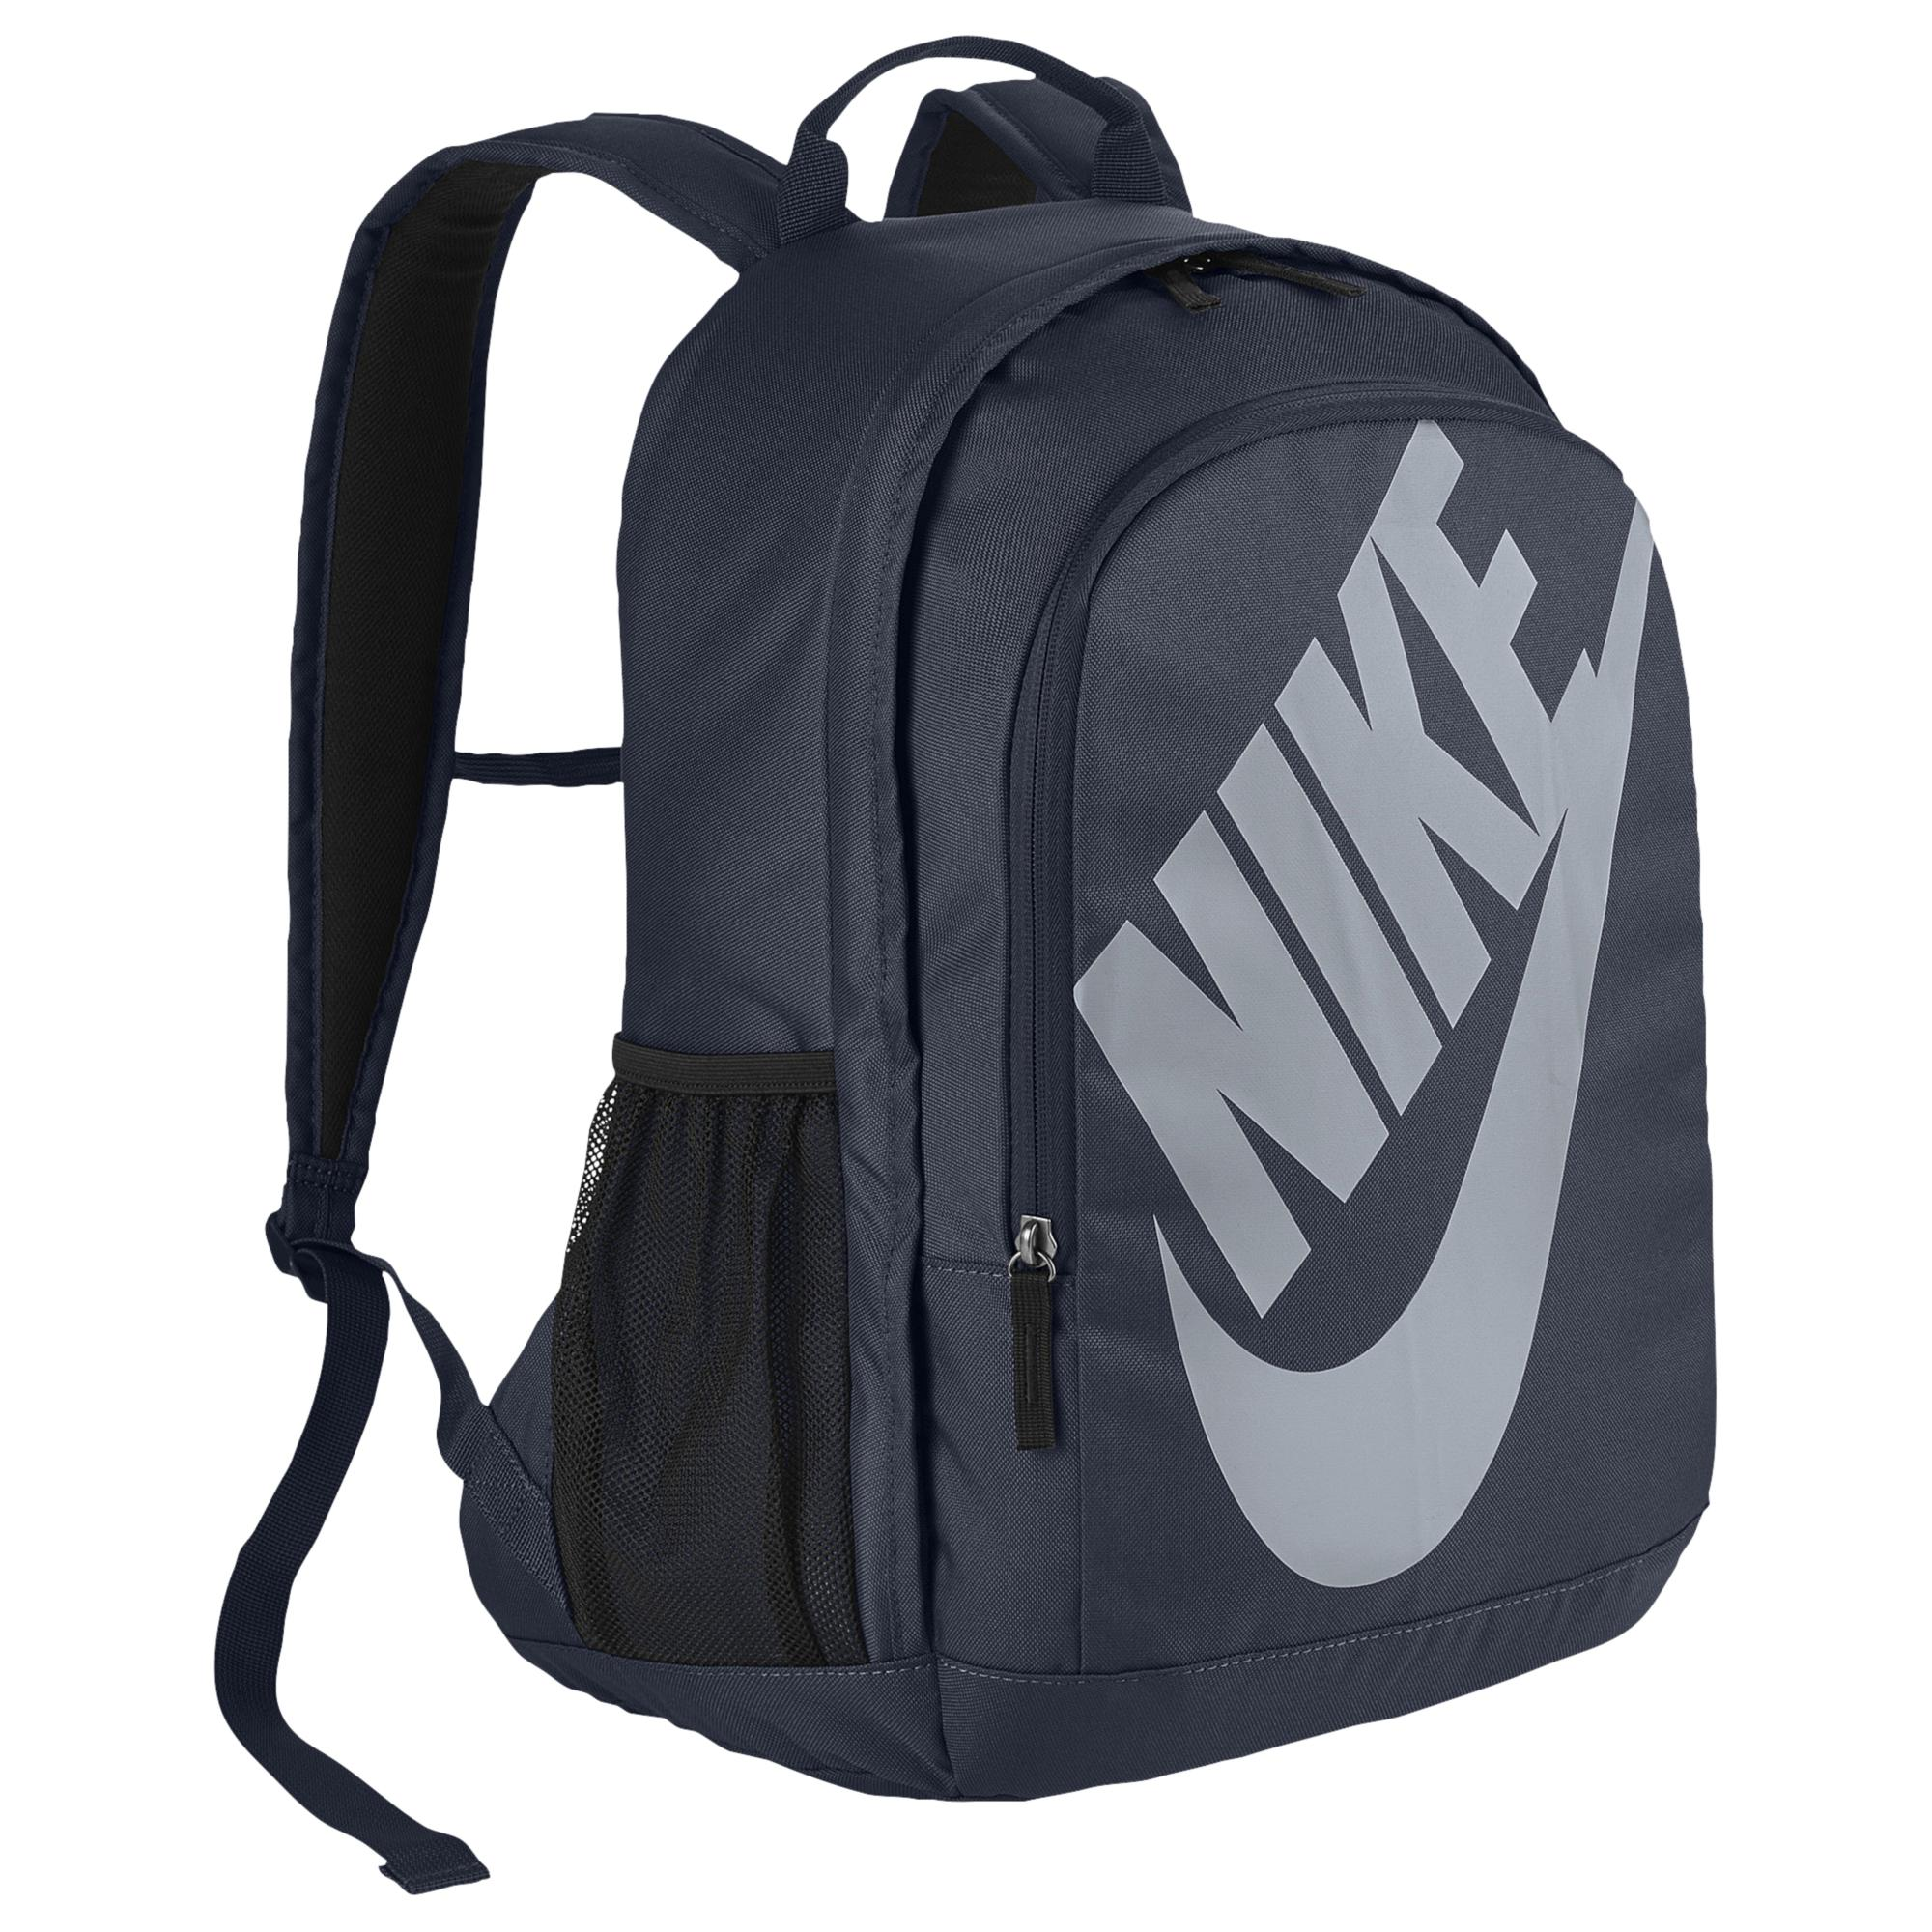 64f1ce3d9a Lyst - Nike Hayward Futura M 2.0 Backpack in Gray for Men - Save 31%